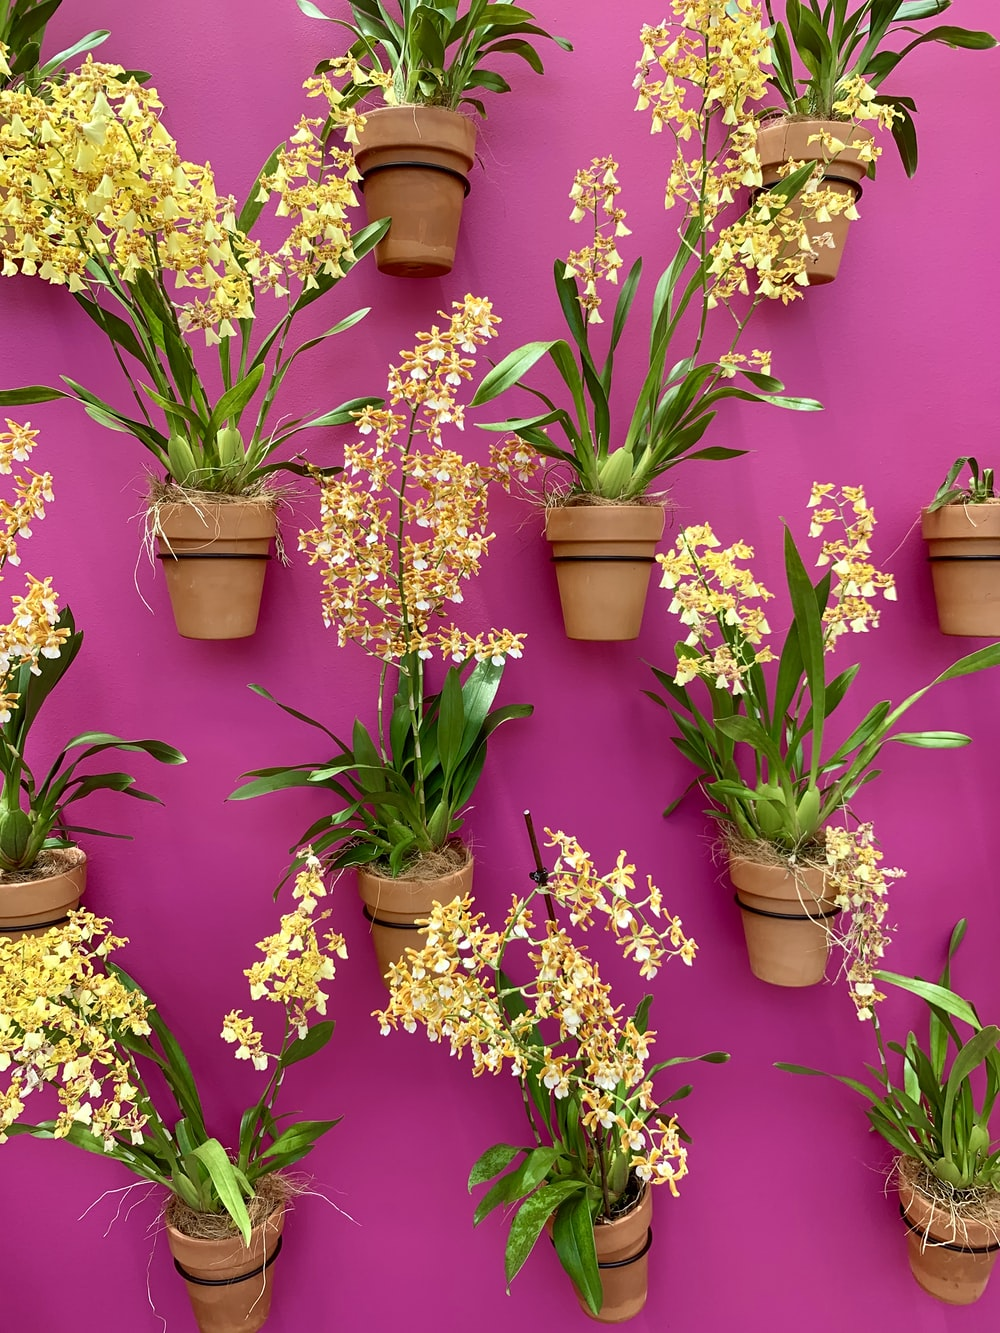 purple and yellow flowers in brown clay pots